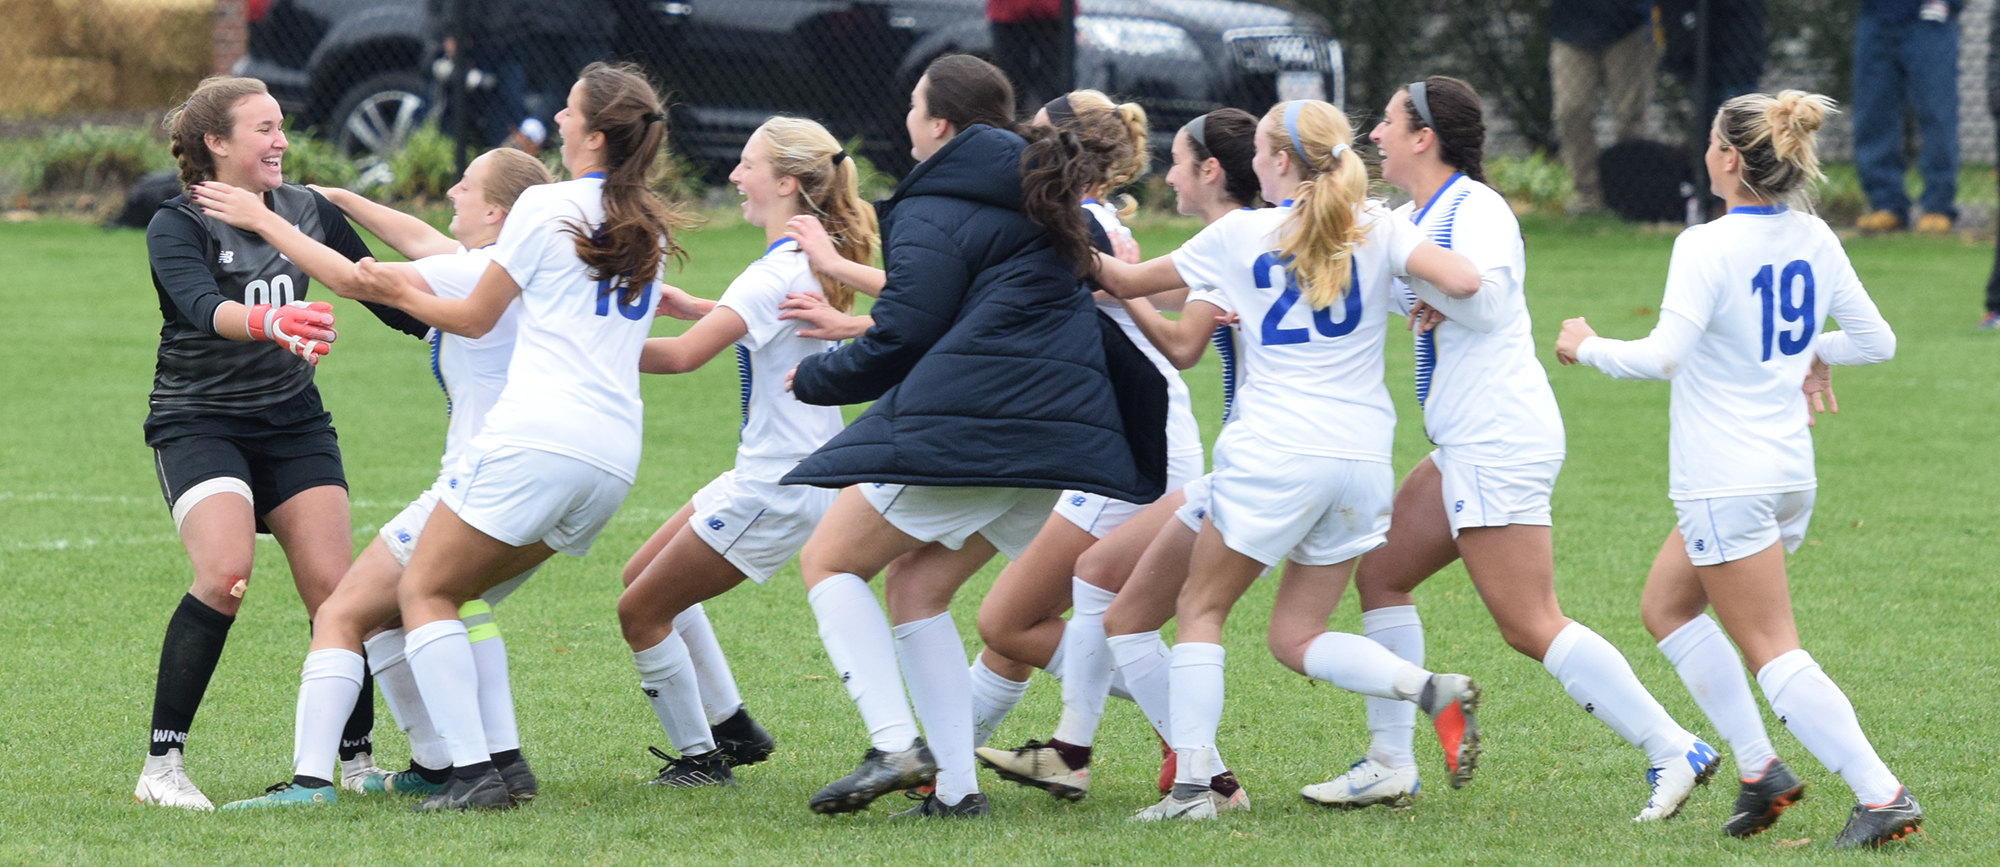 Western New England advanced to the CCC Tournament semifinals for the second consecutive season with a PK shootout win over Roger Williams on Sunday.